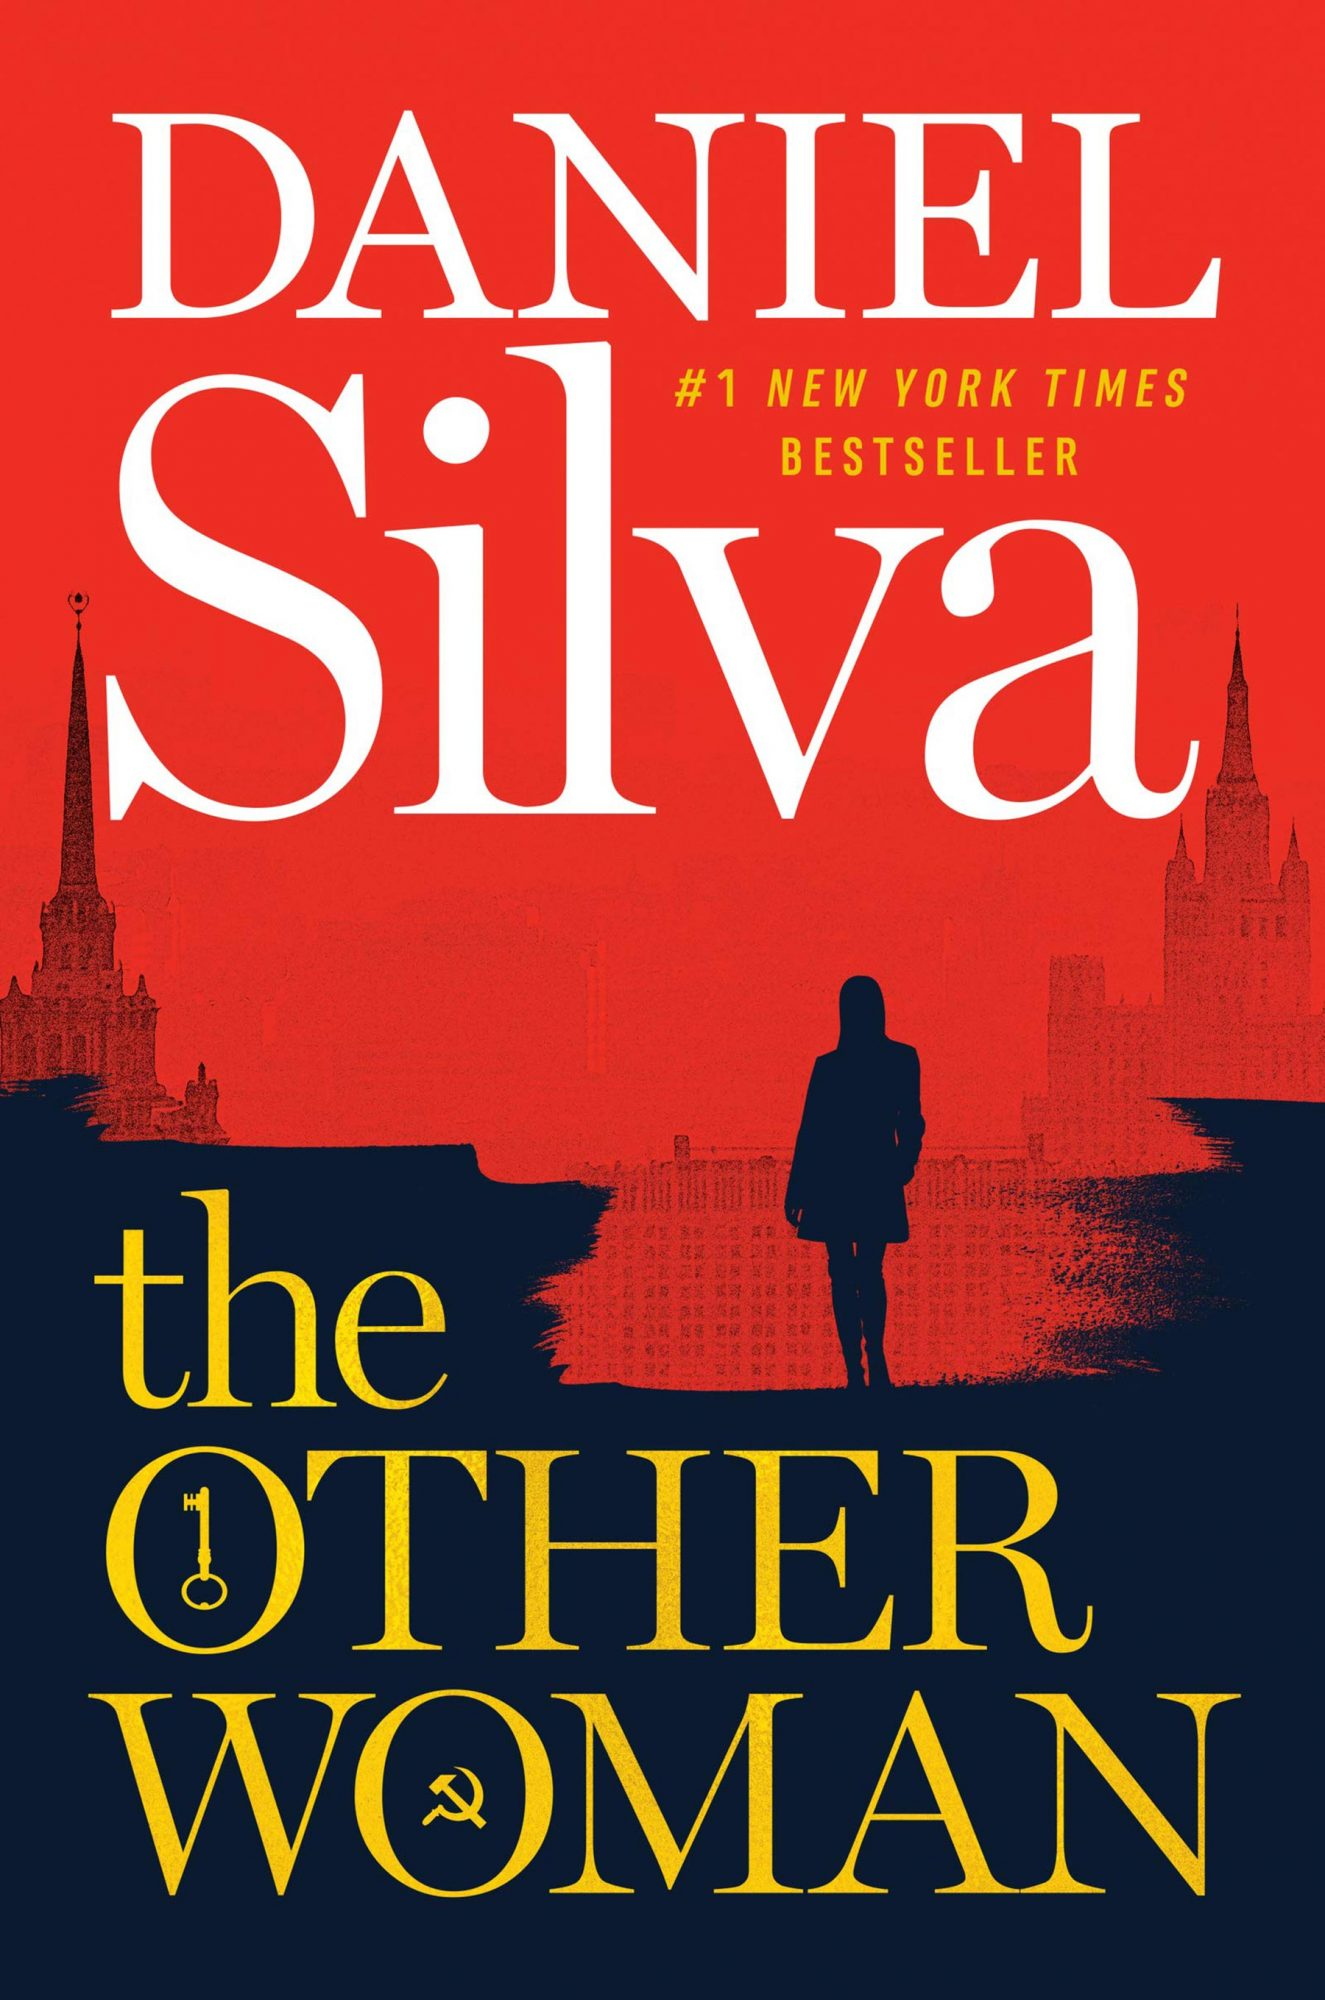 The Other Woman: A Novel  by Daniel Silva  Harper